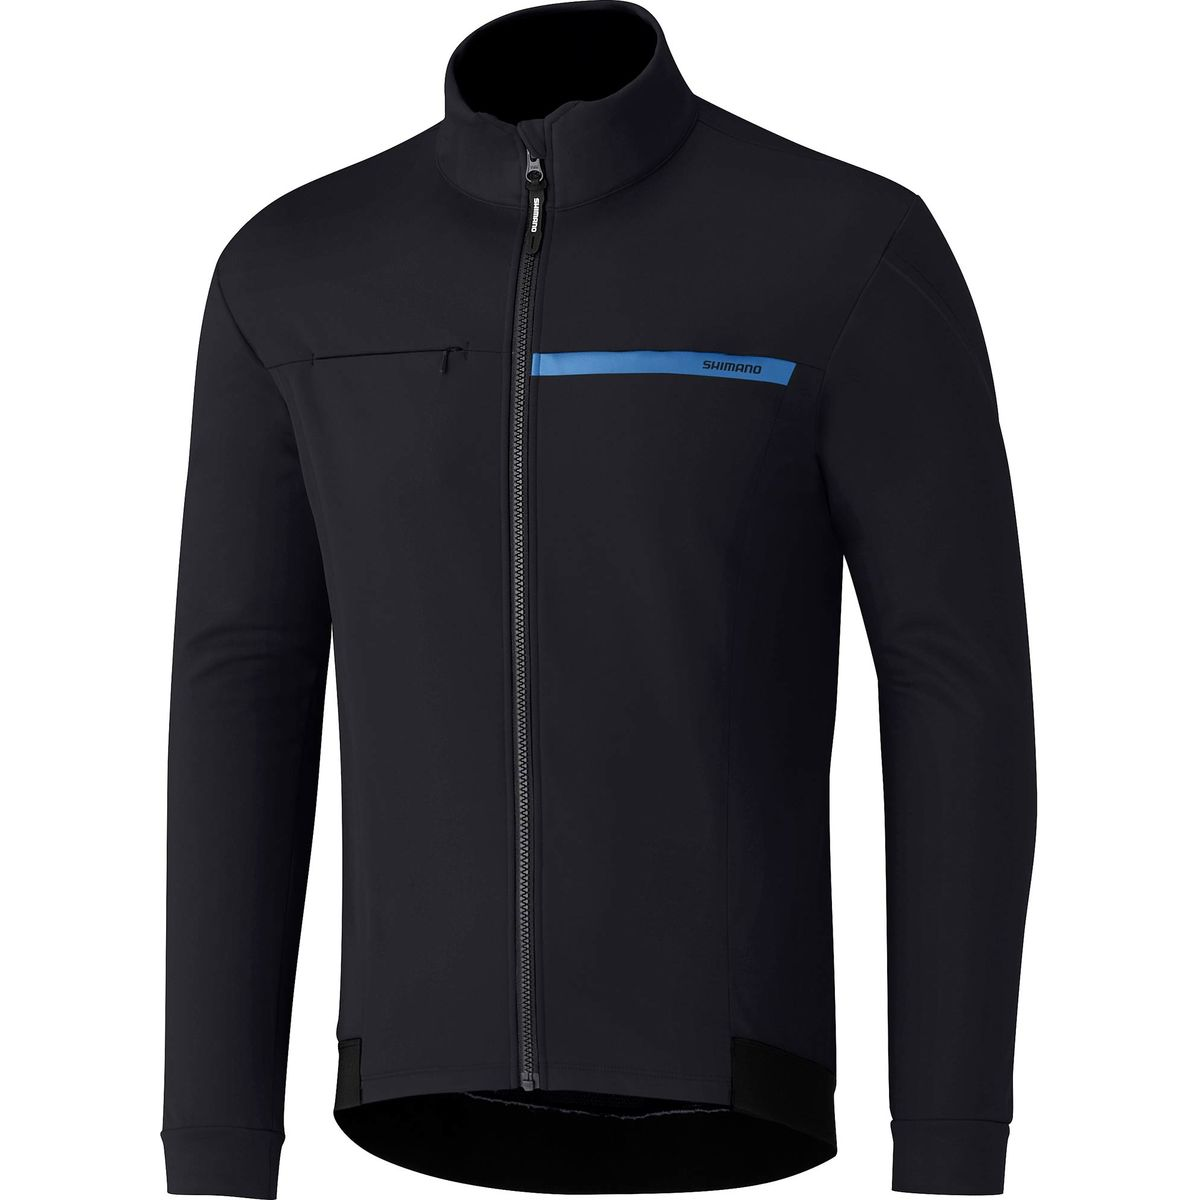 Windbreak Jacket Shimano